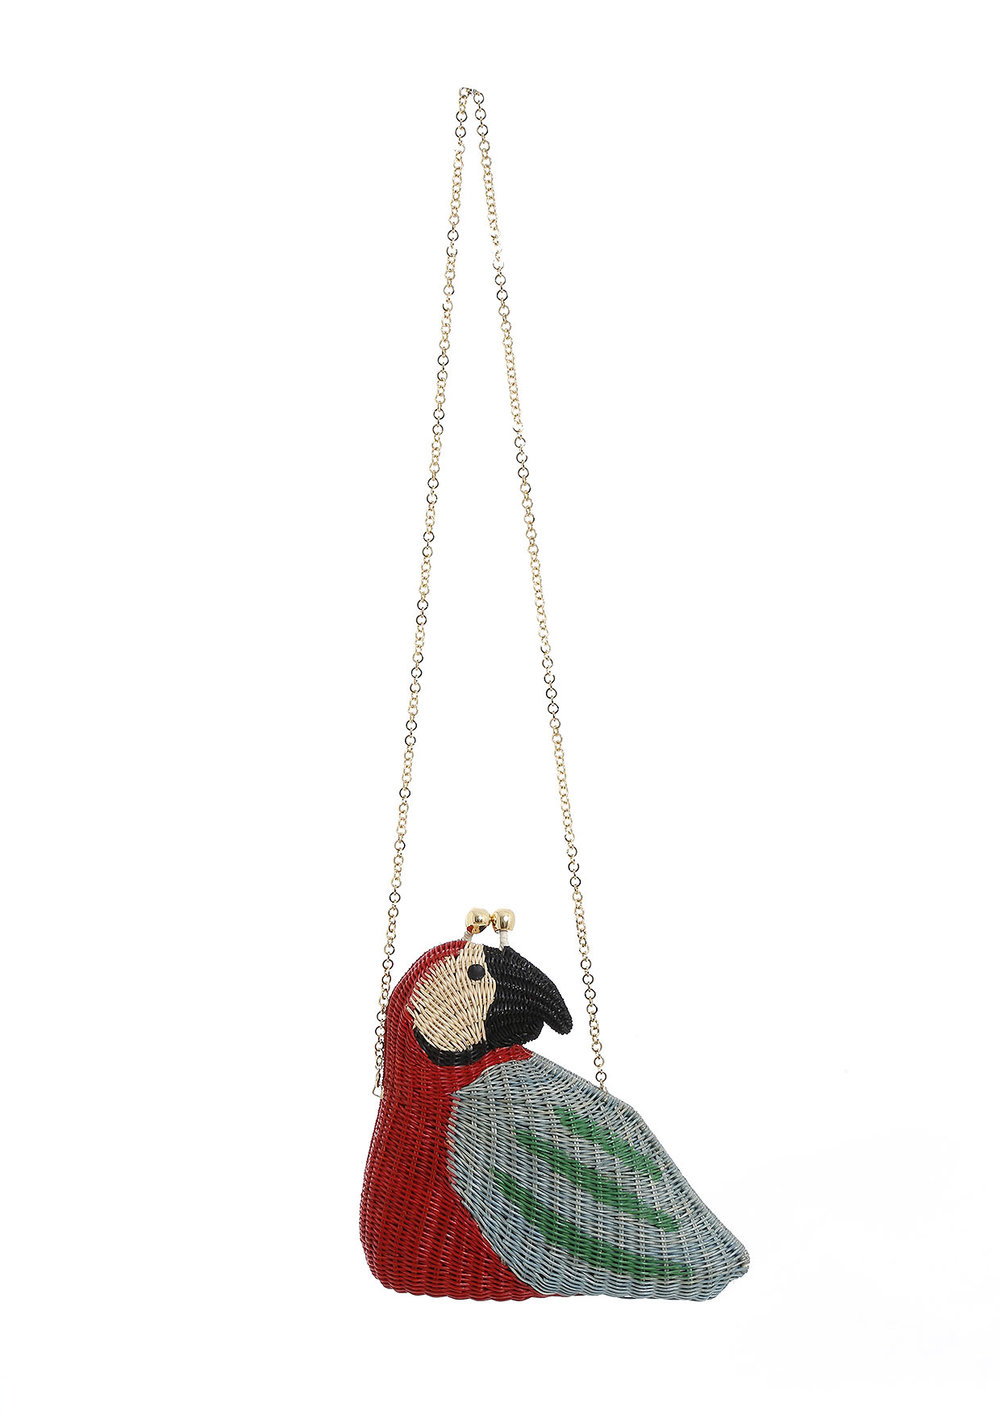 Macaw basket - 212€ NOW 218€